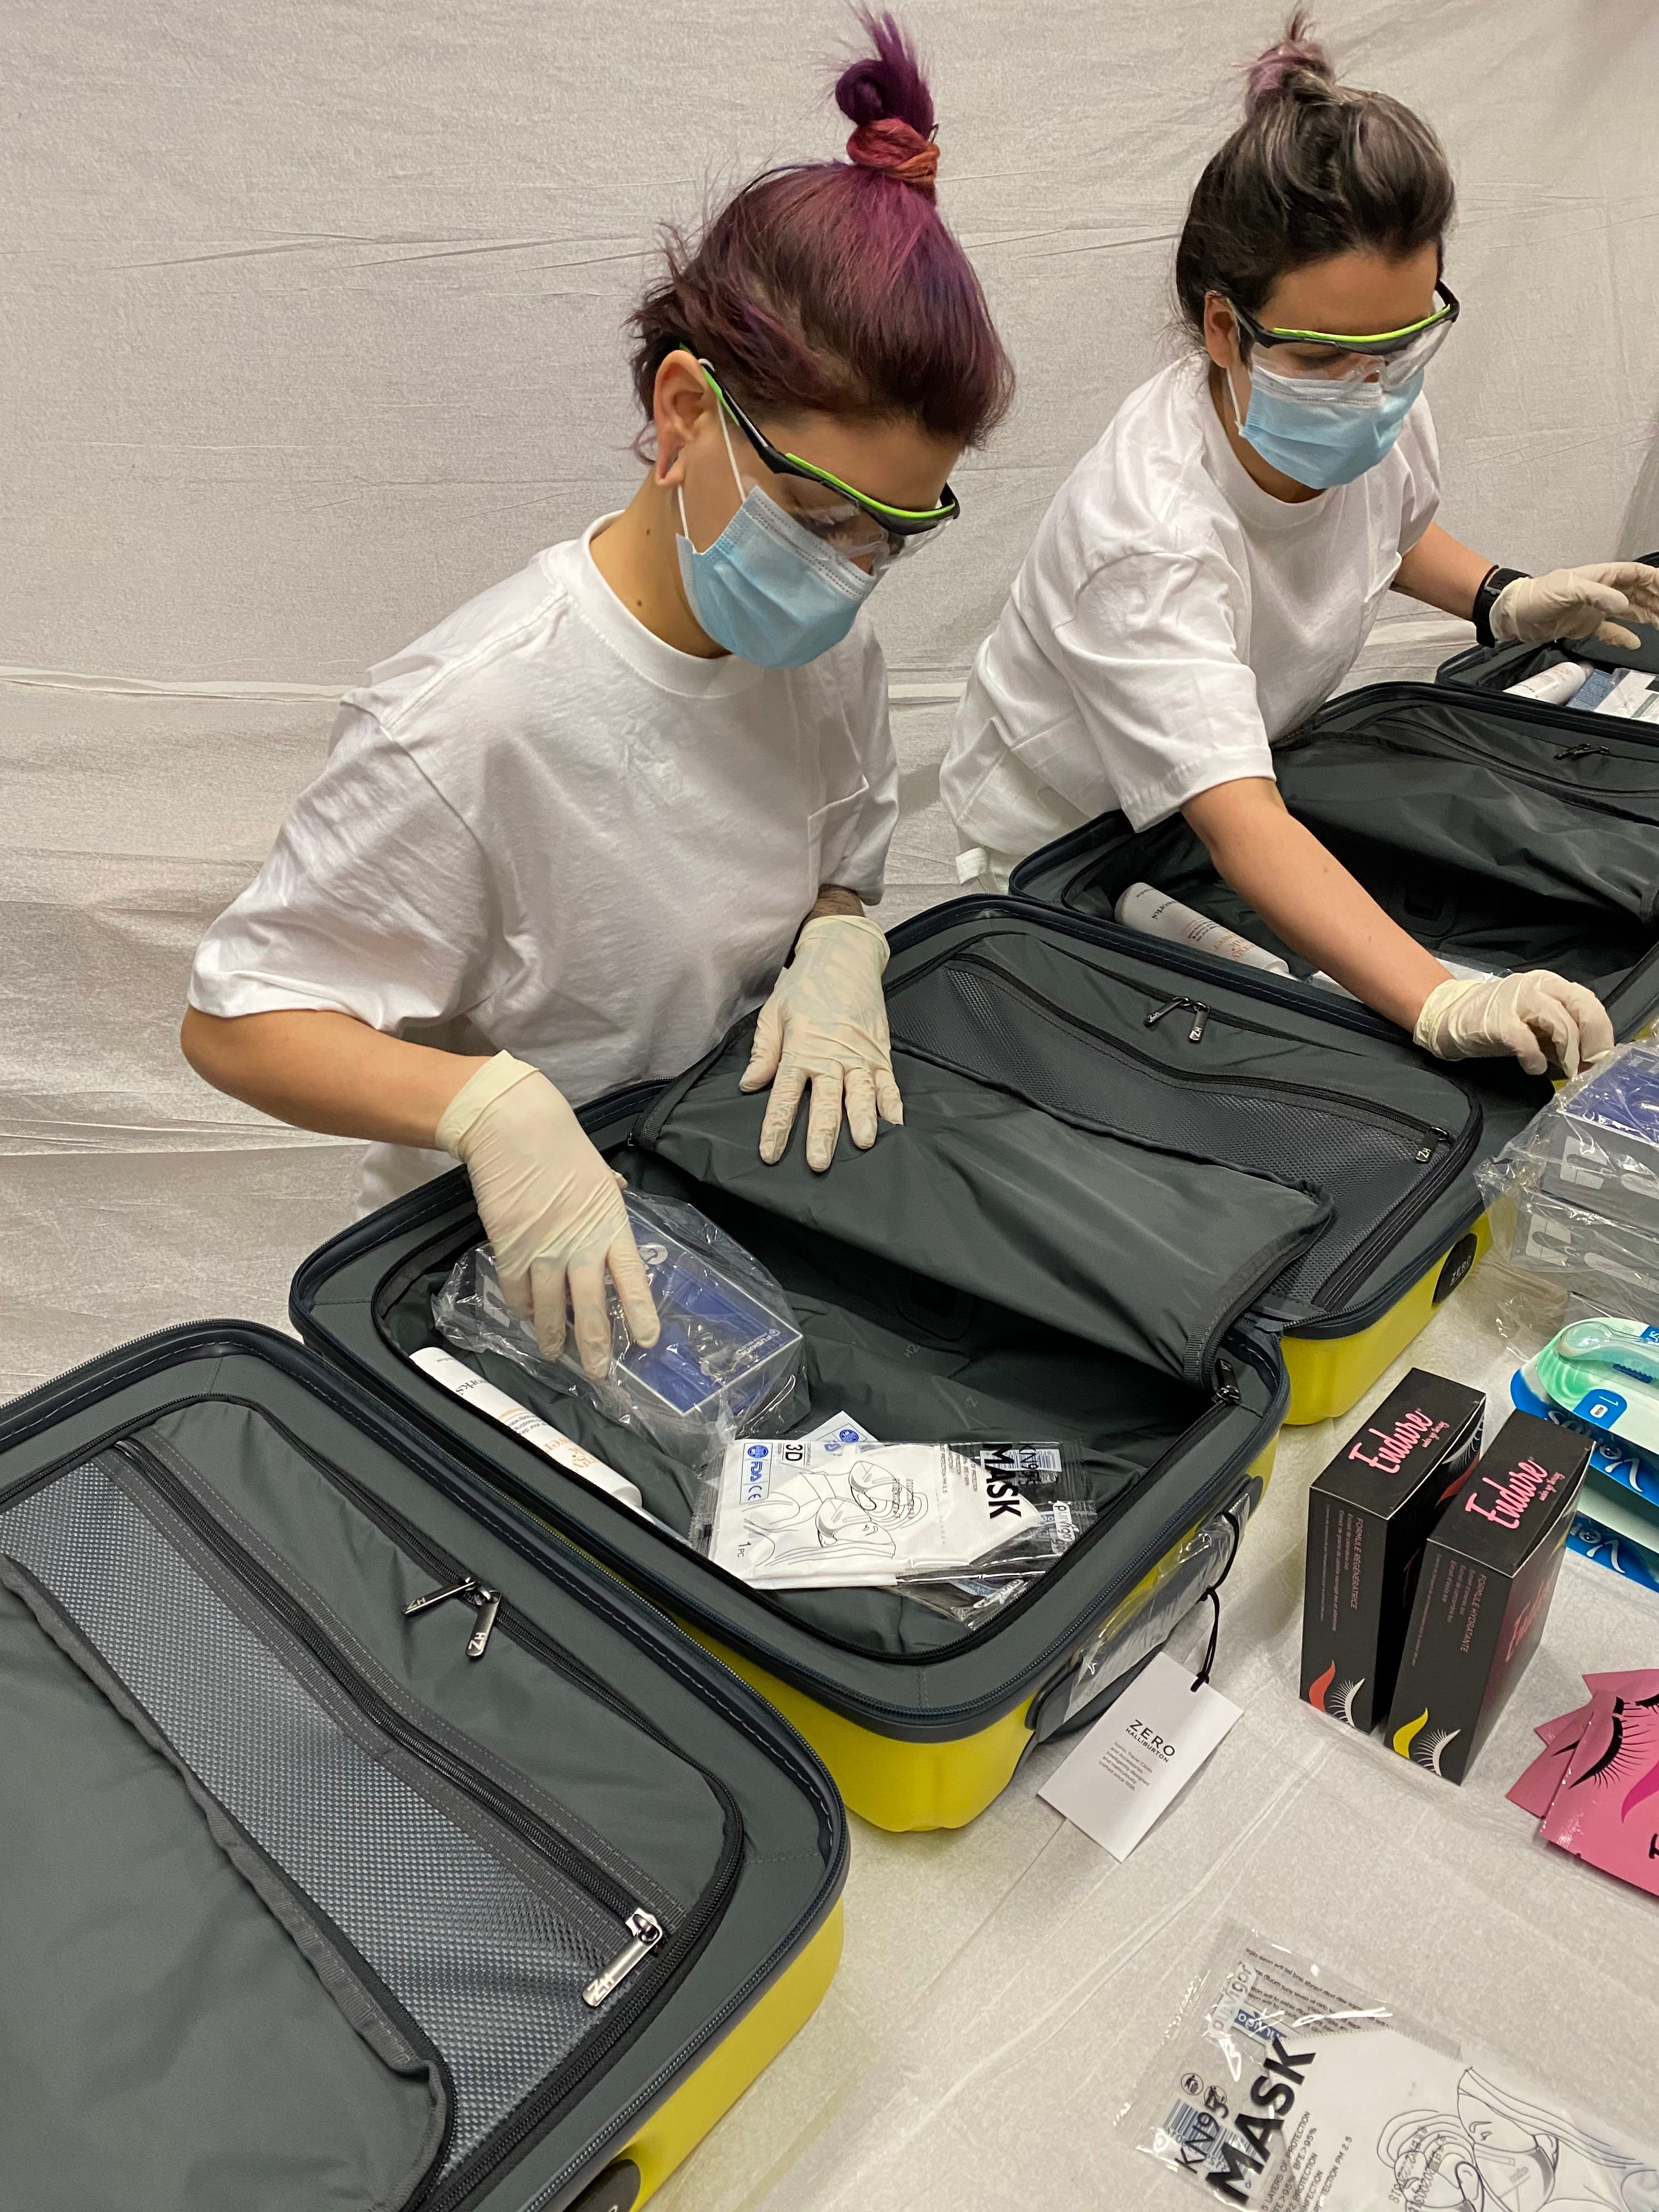 packing suitcases for nurses thank you medical workers